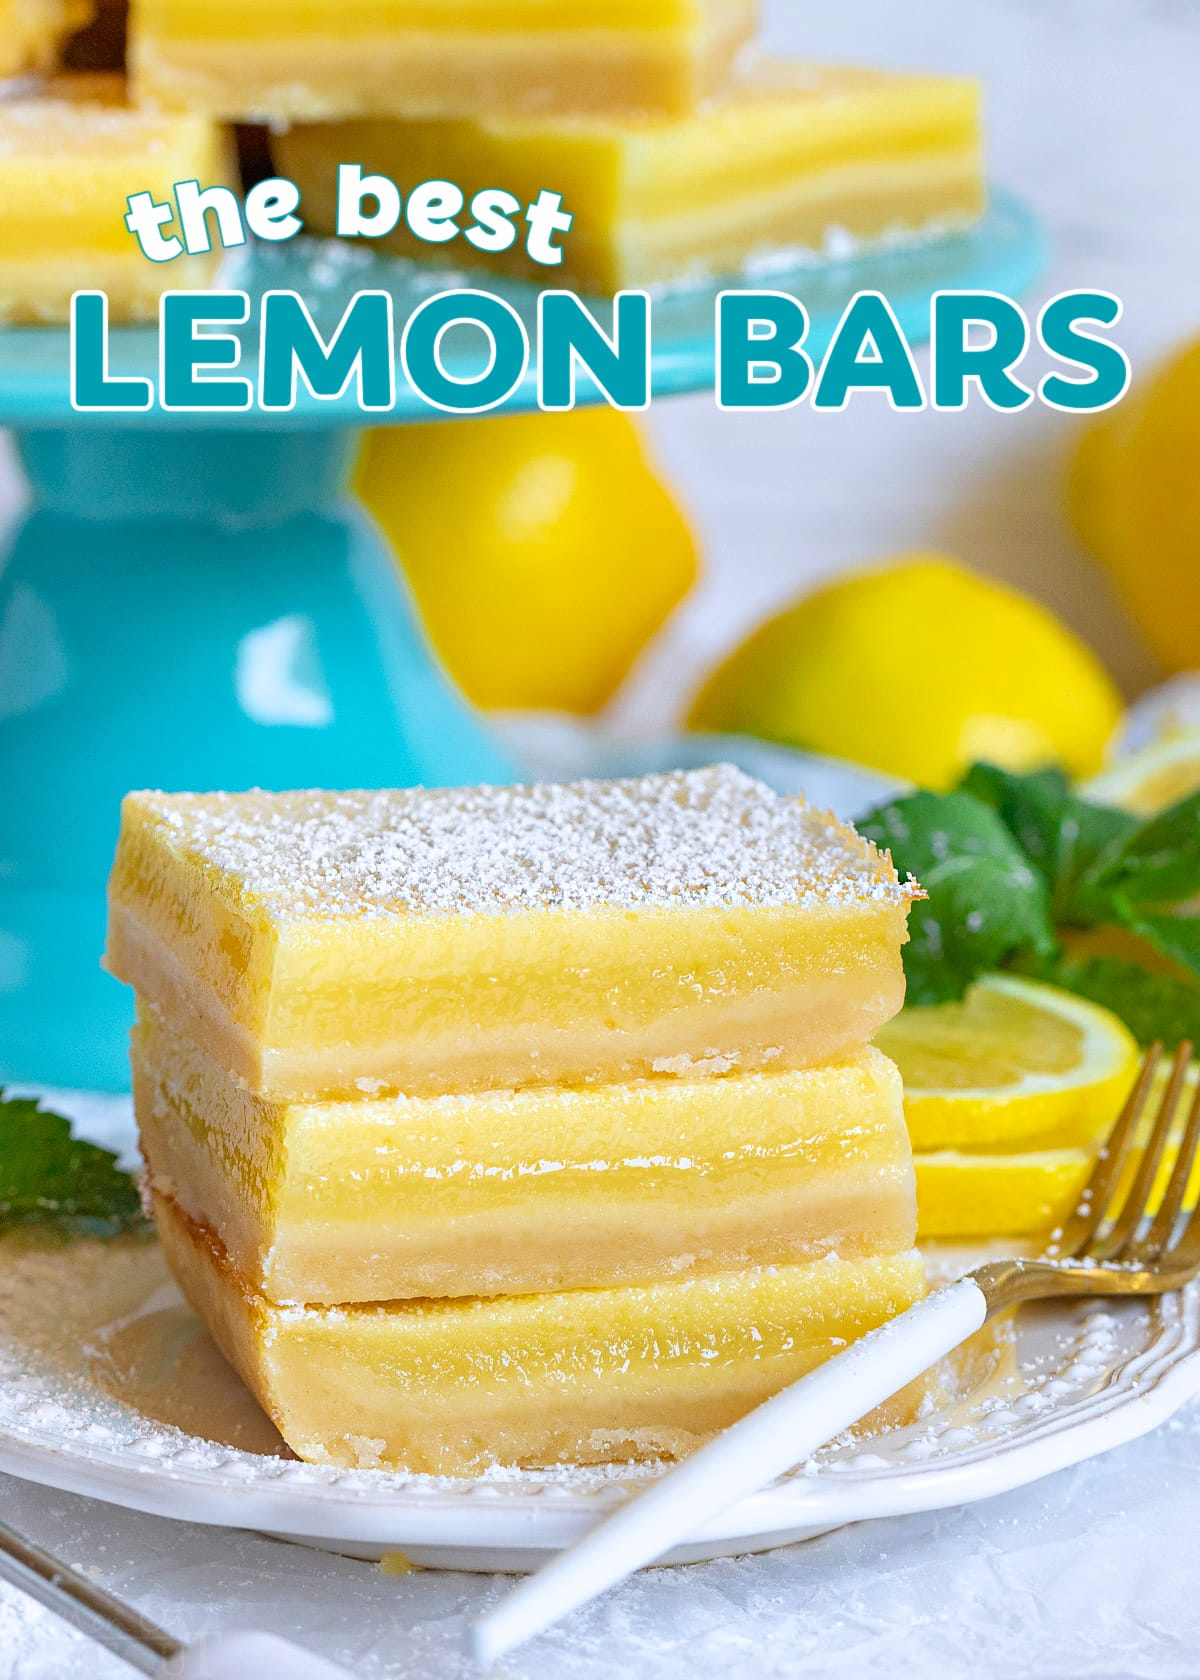 lemon bars stacked three high on white plate in front of teal cake stand with more lemon bars. title overlay at top of image.